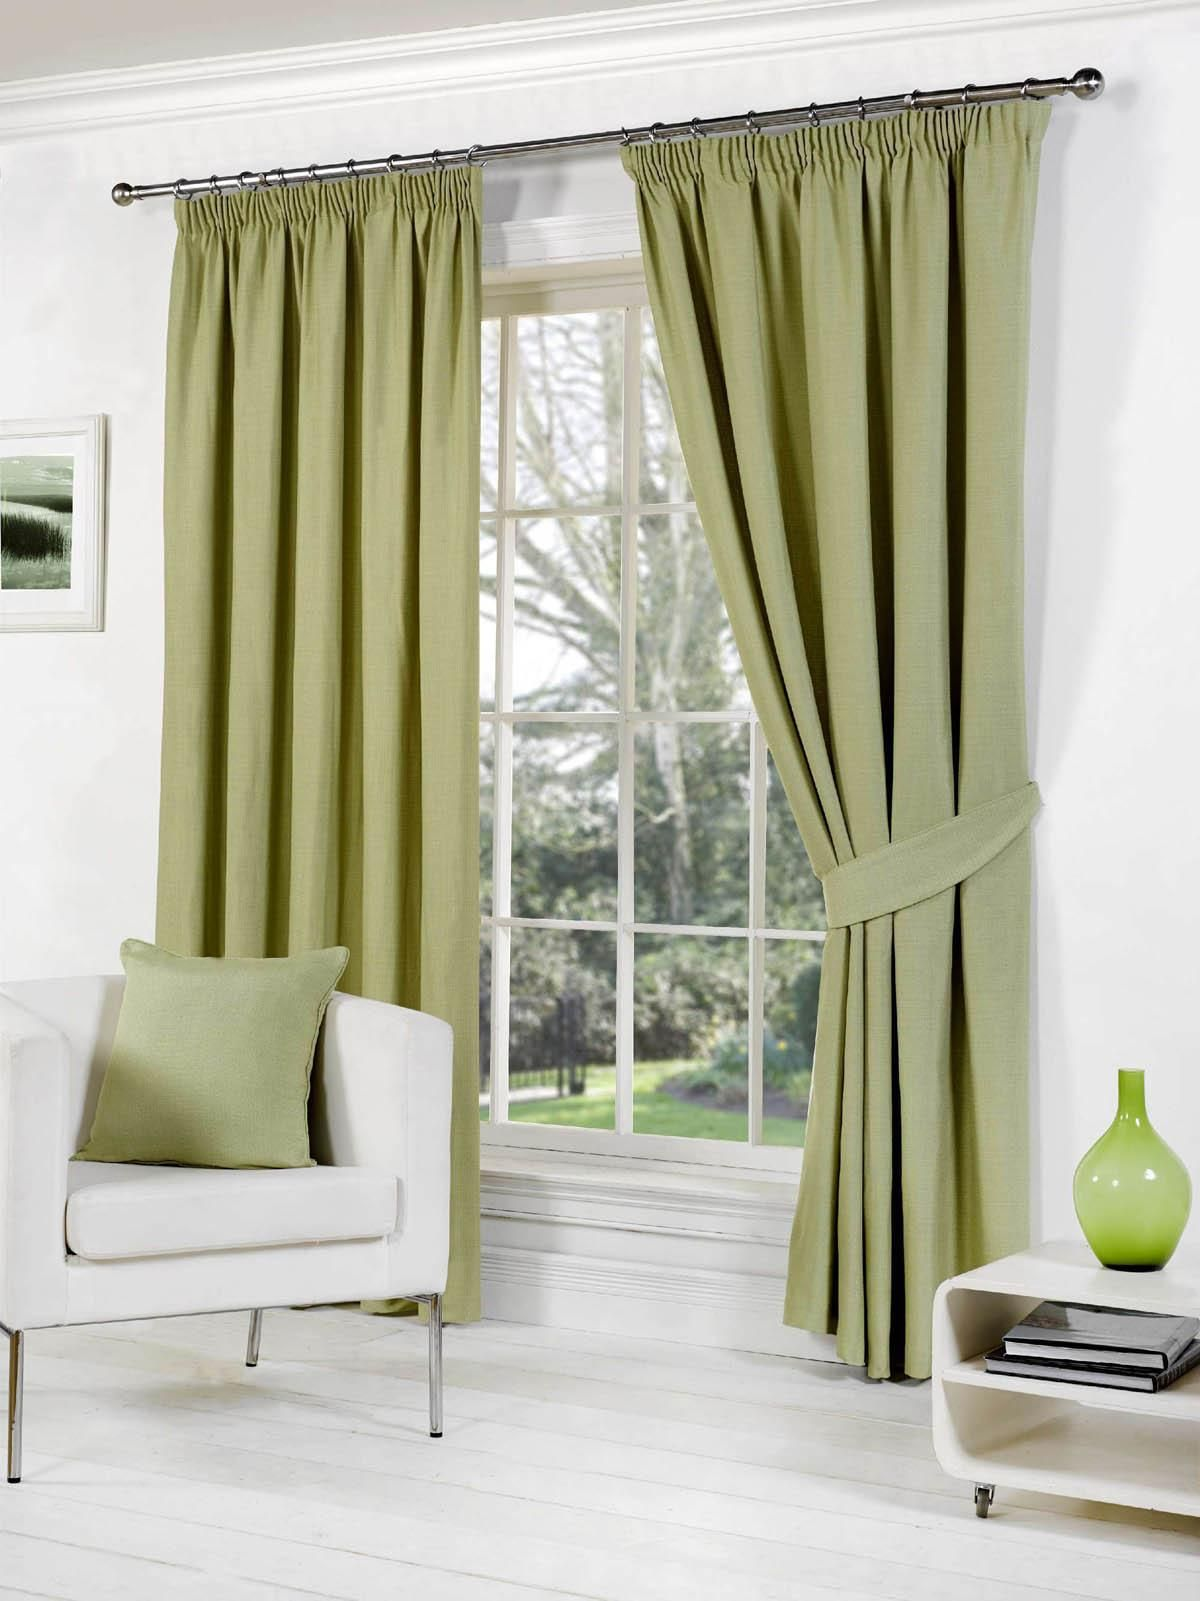 montgomery made of advantages large main curtains curtain info ready blog